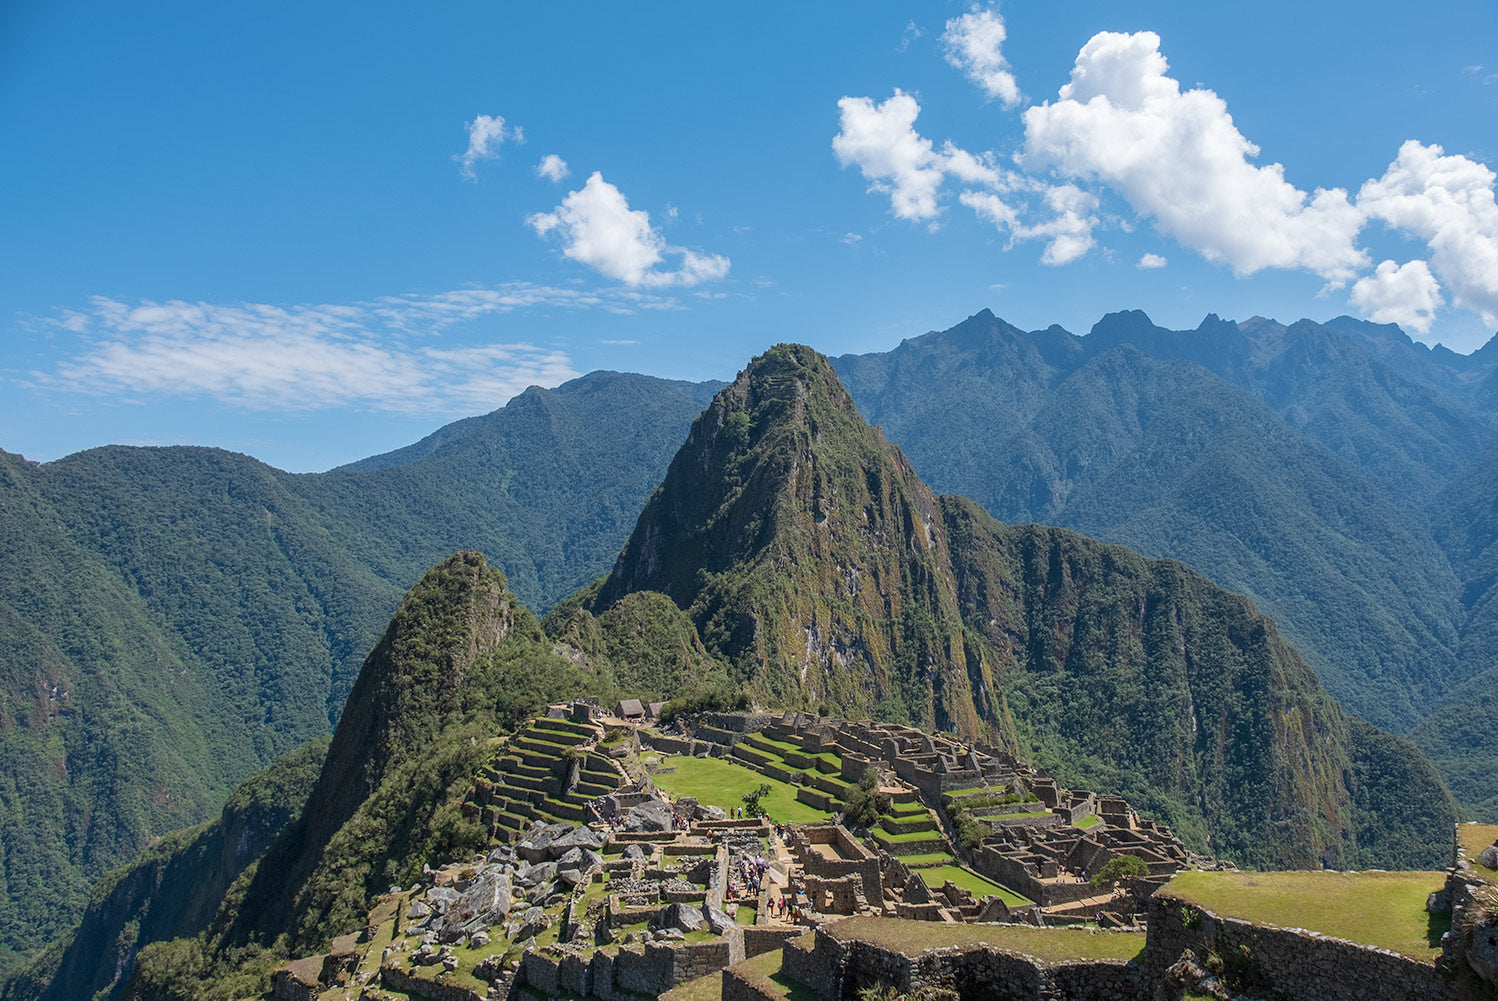 The sprawling Incan city of Machu Picchu in Peru surrounded by towering mountains as viewed from the Sun Gate above the city.